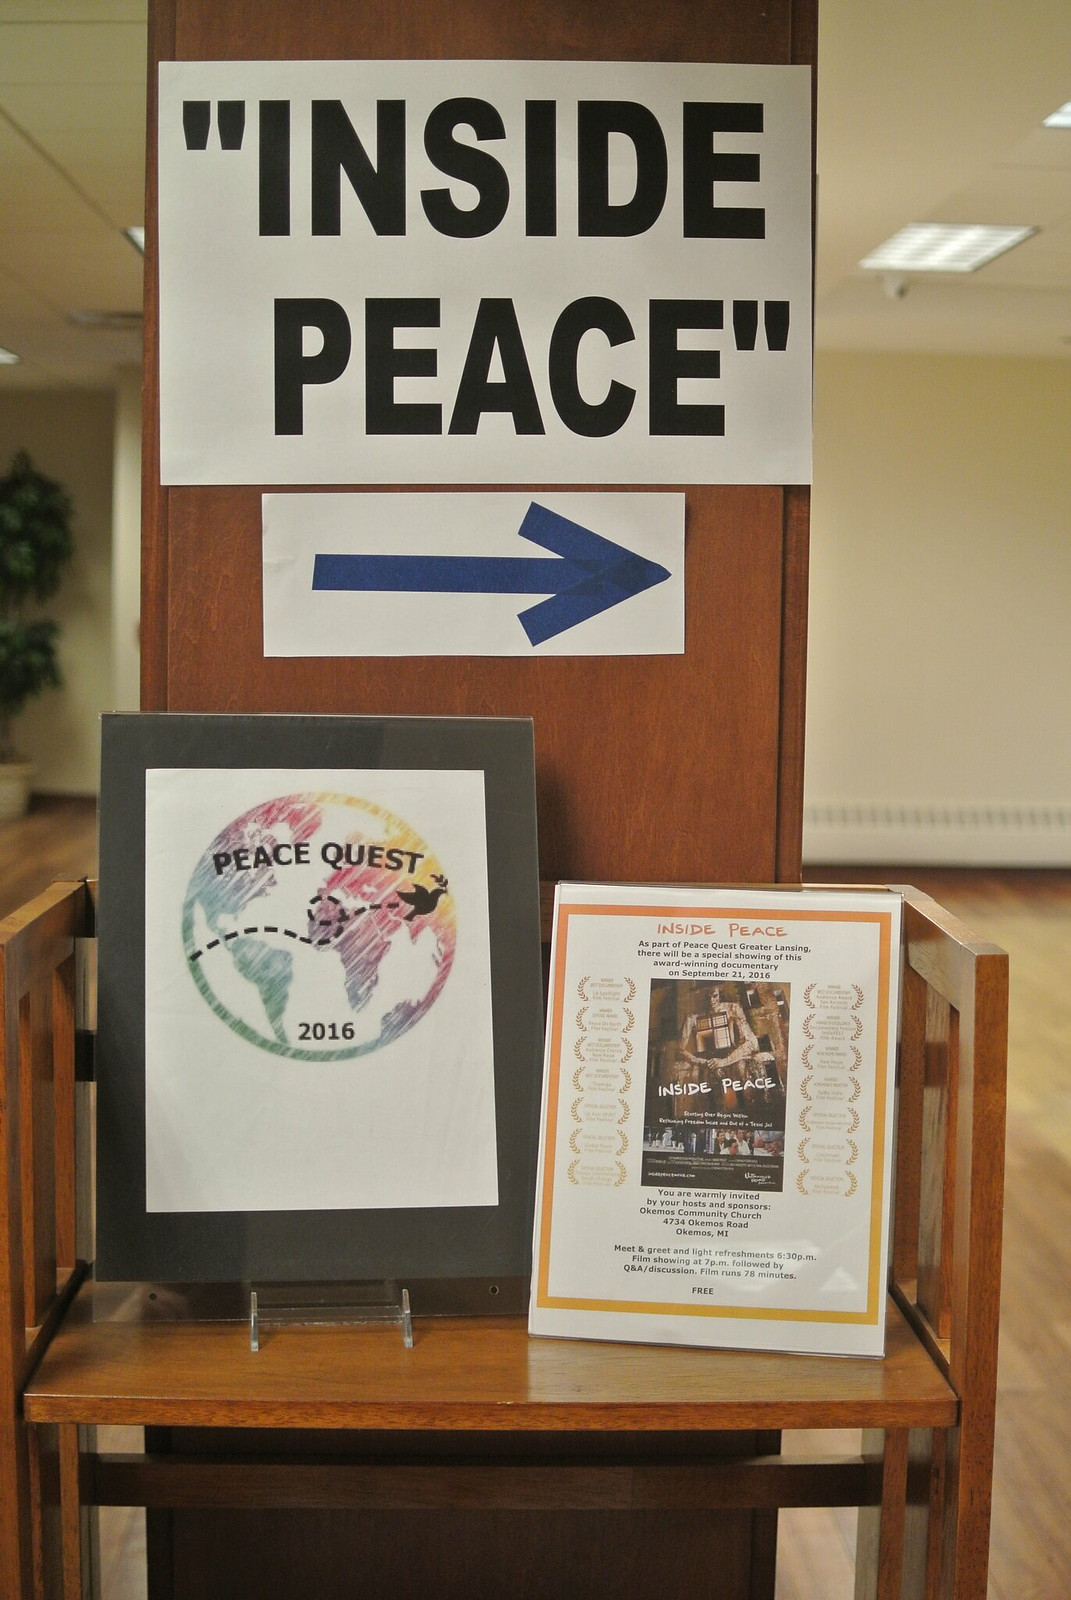 Inside Peace movie showing during Lansing PeaceQuest 2016 (5)